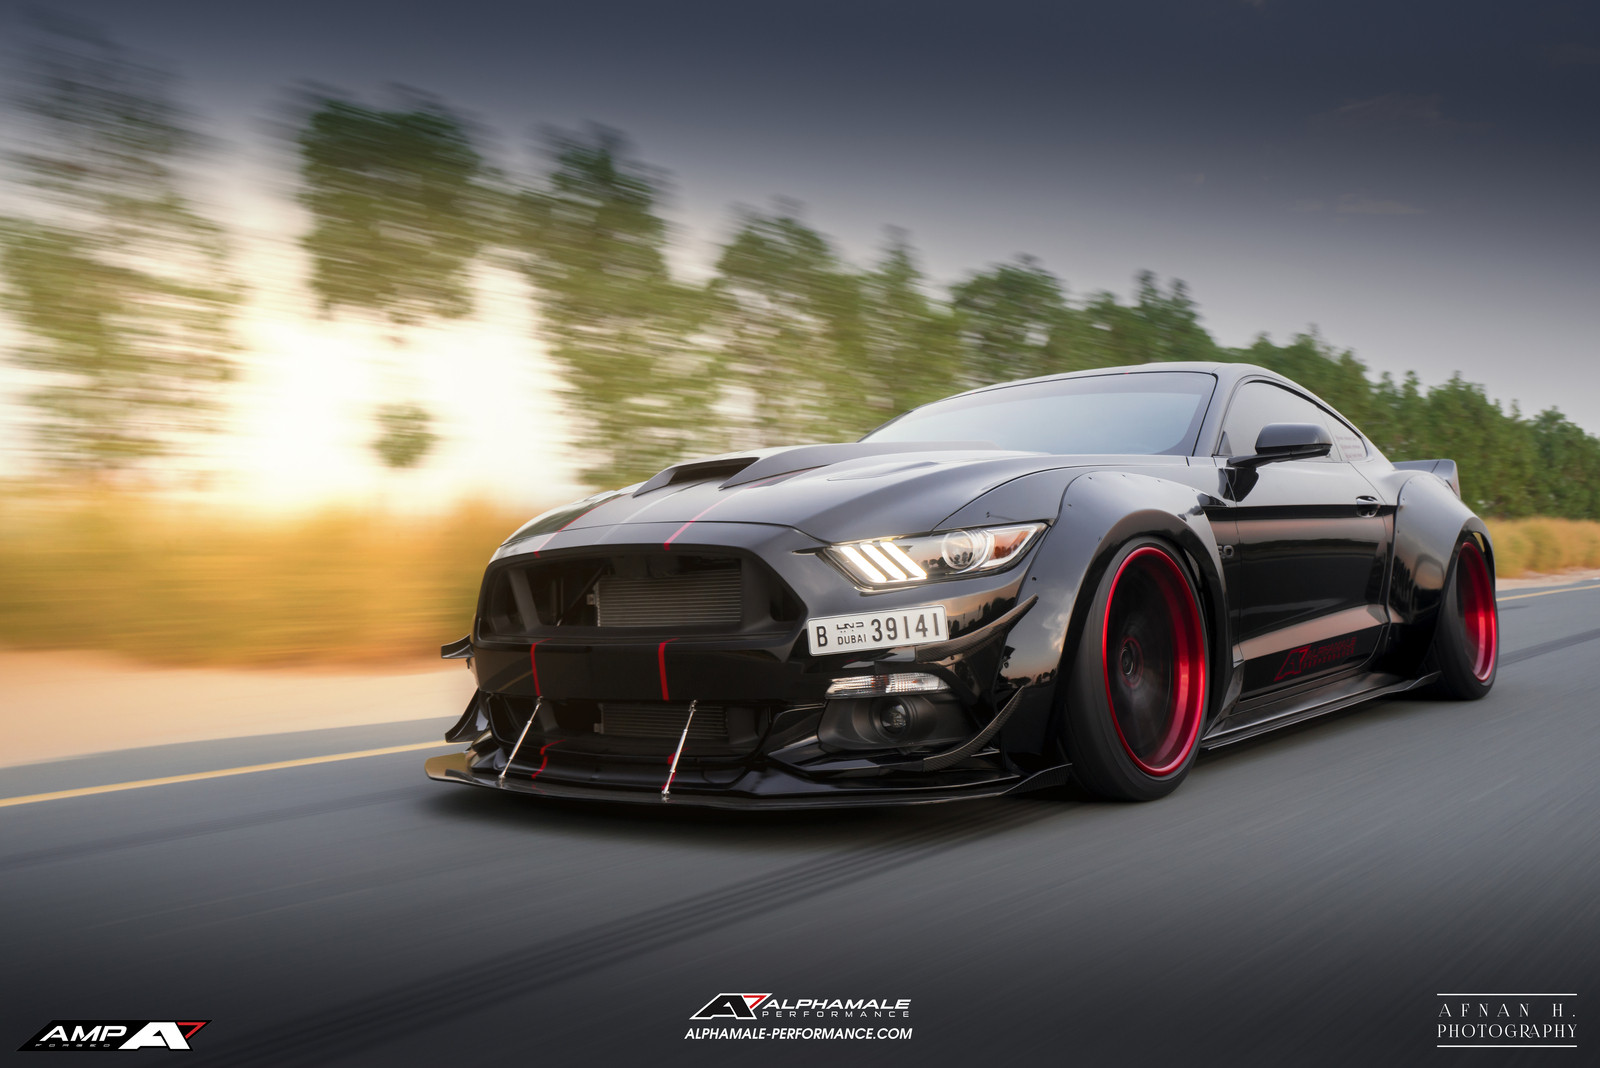 2016 Mustang Hood Scoop >> Alpha ONE S550 Widebody Mustang in Dubai on AMP-5V Forged wheels. The Baddest of all Mustangs